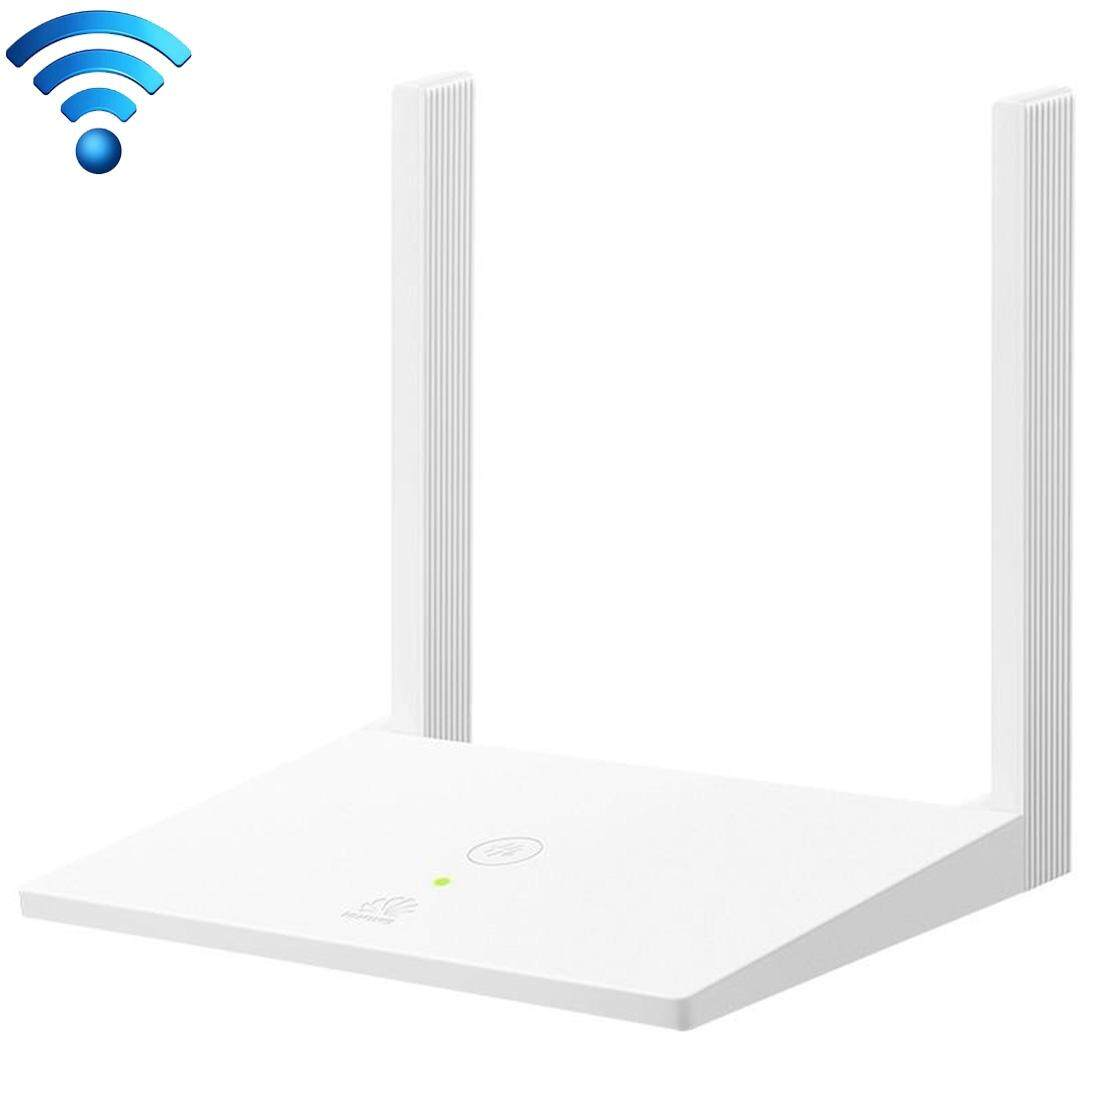 Buy Sell Cheapest Huawei Wireless Router Best Quality Product Range Extender Ws331c Ws318 Enhanced Version 300mbps 24ghz Wifi Repeater With 2 Antennas